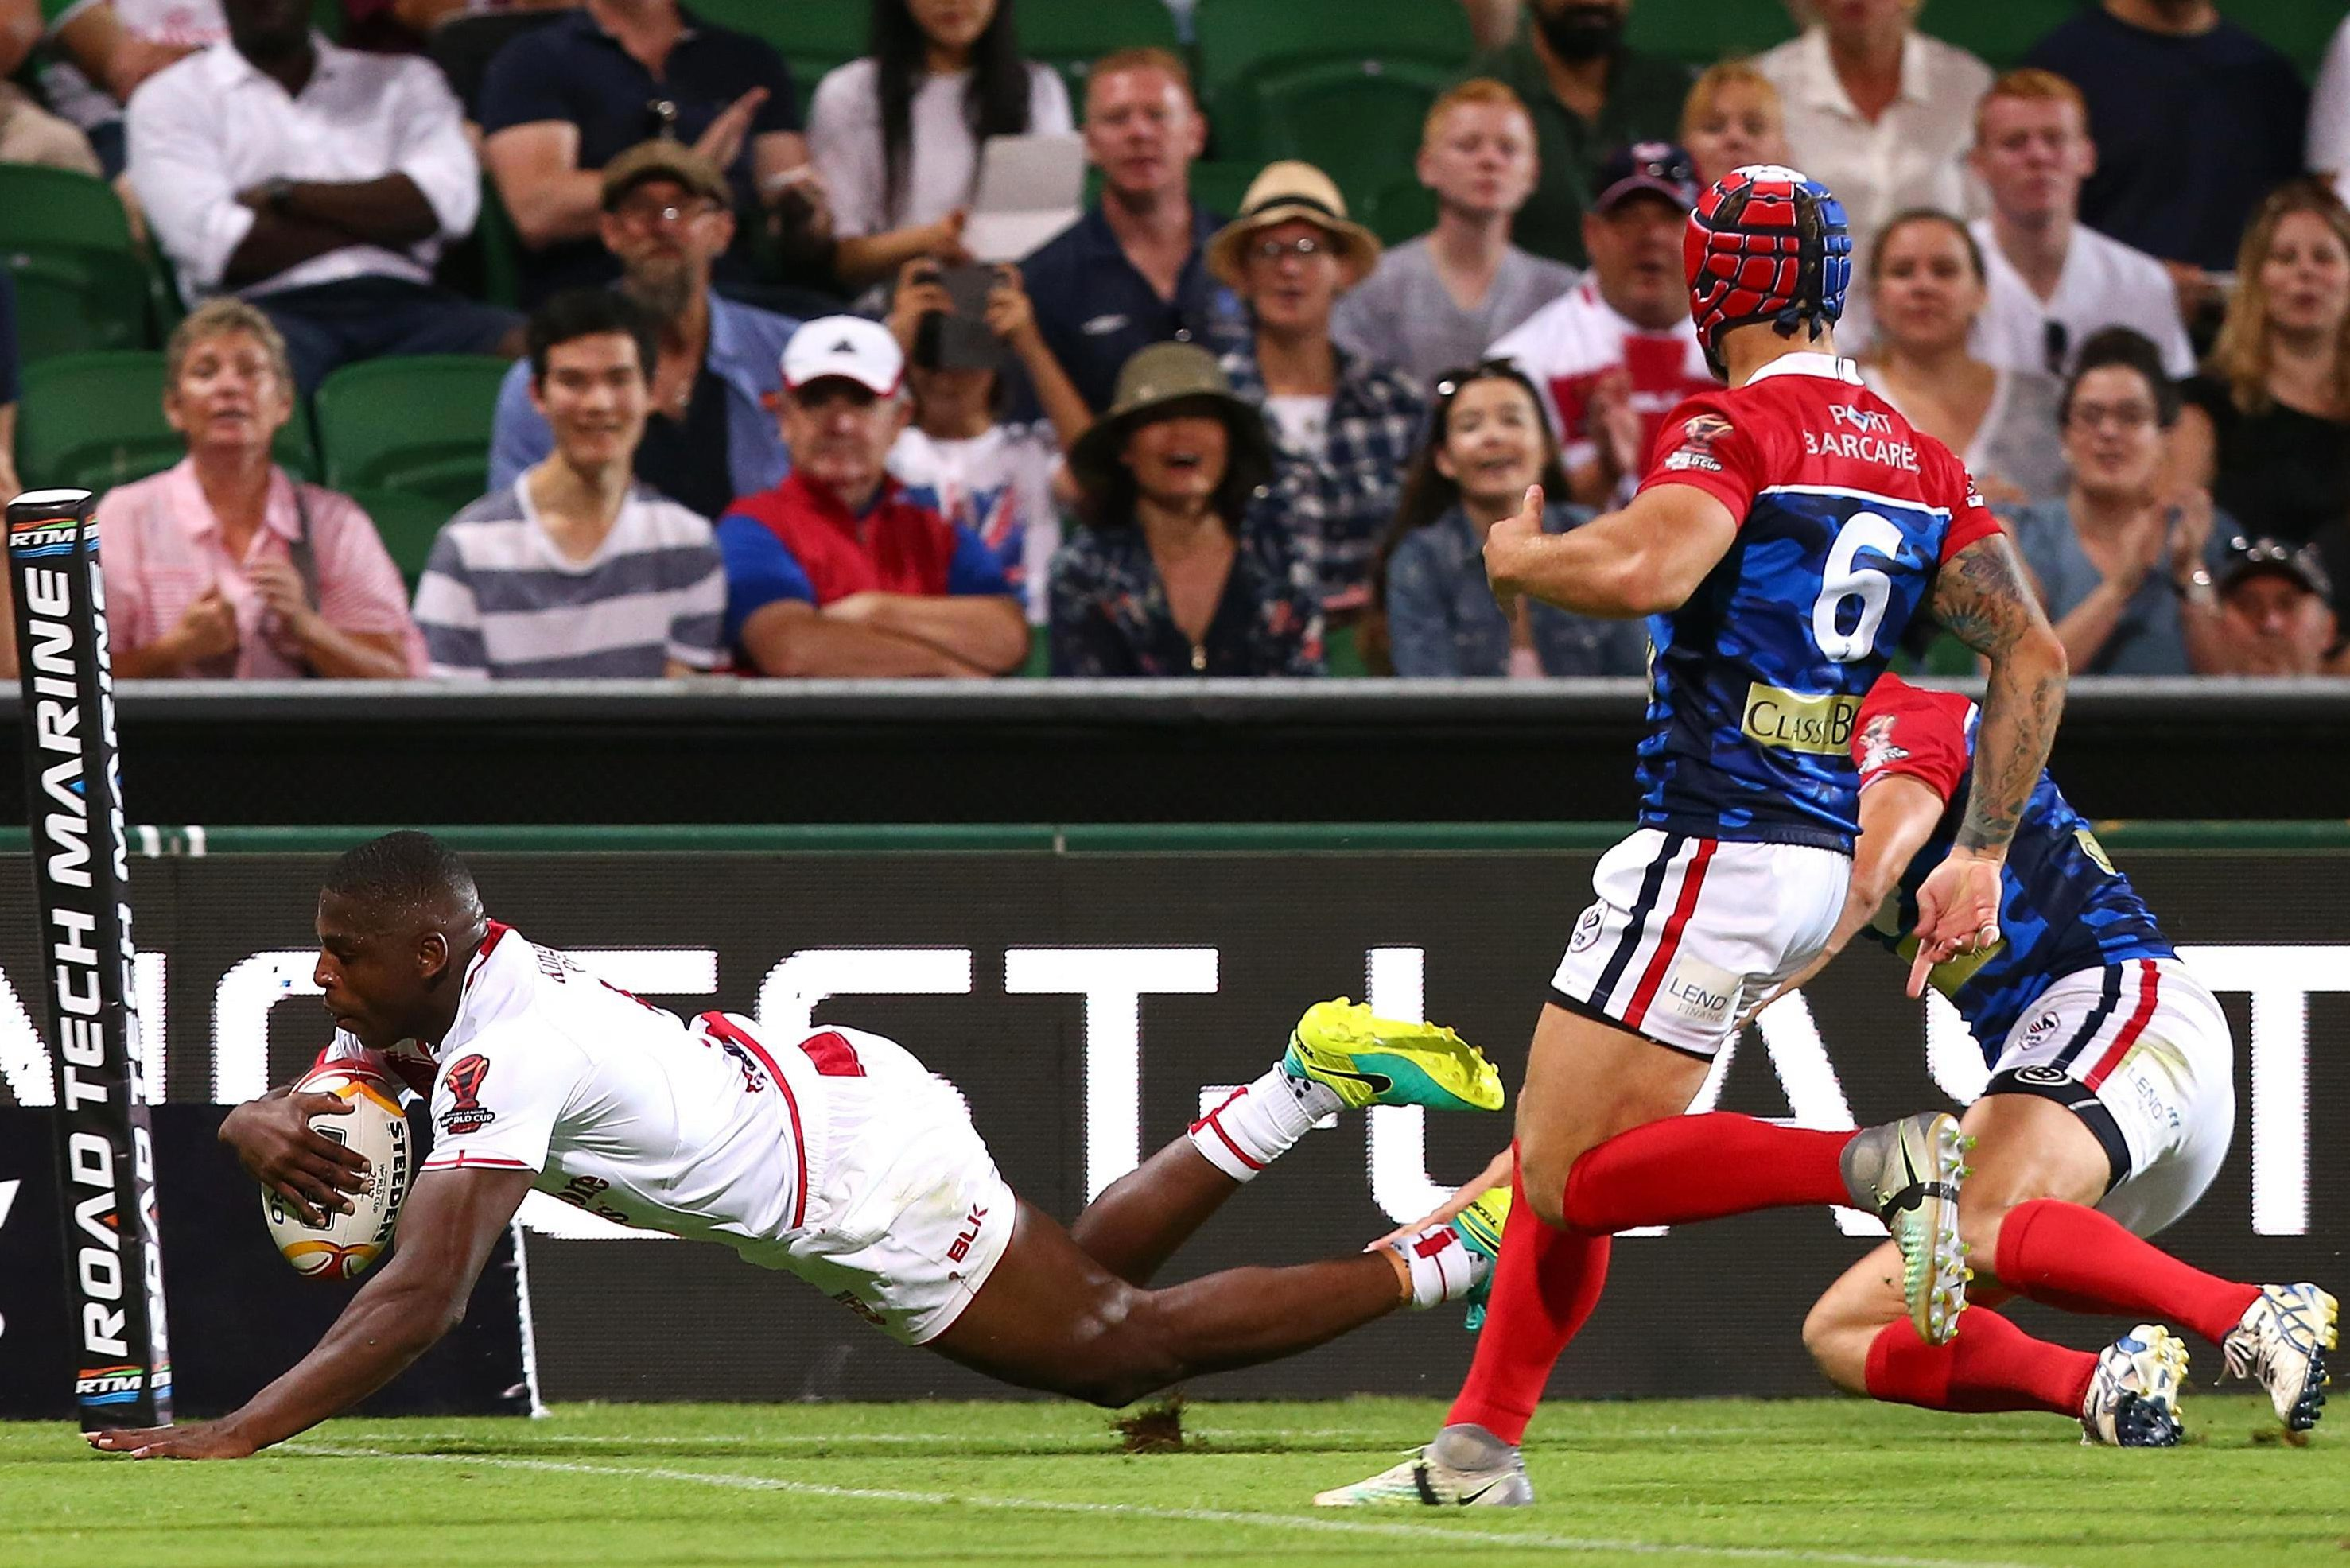 McGillvary was England's star of last year's World Cup